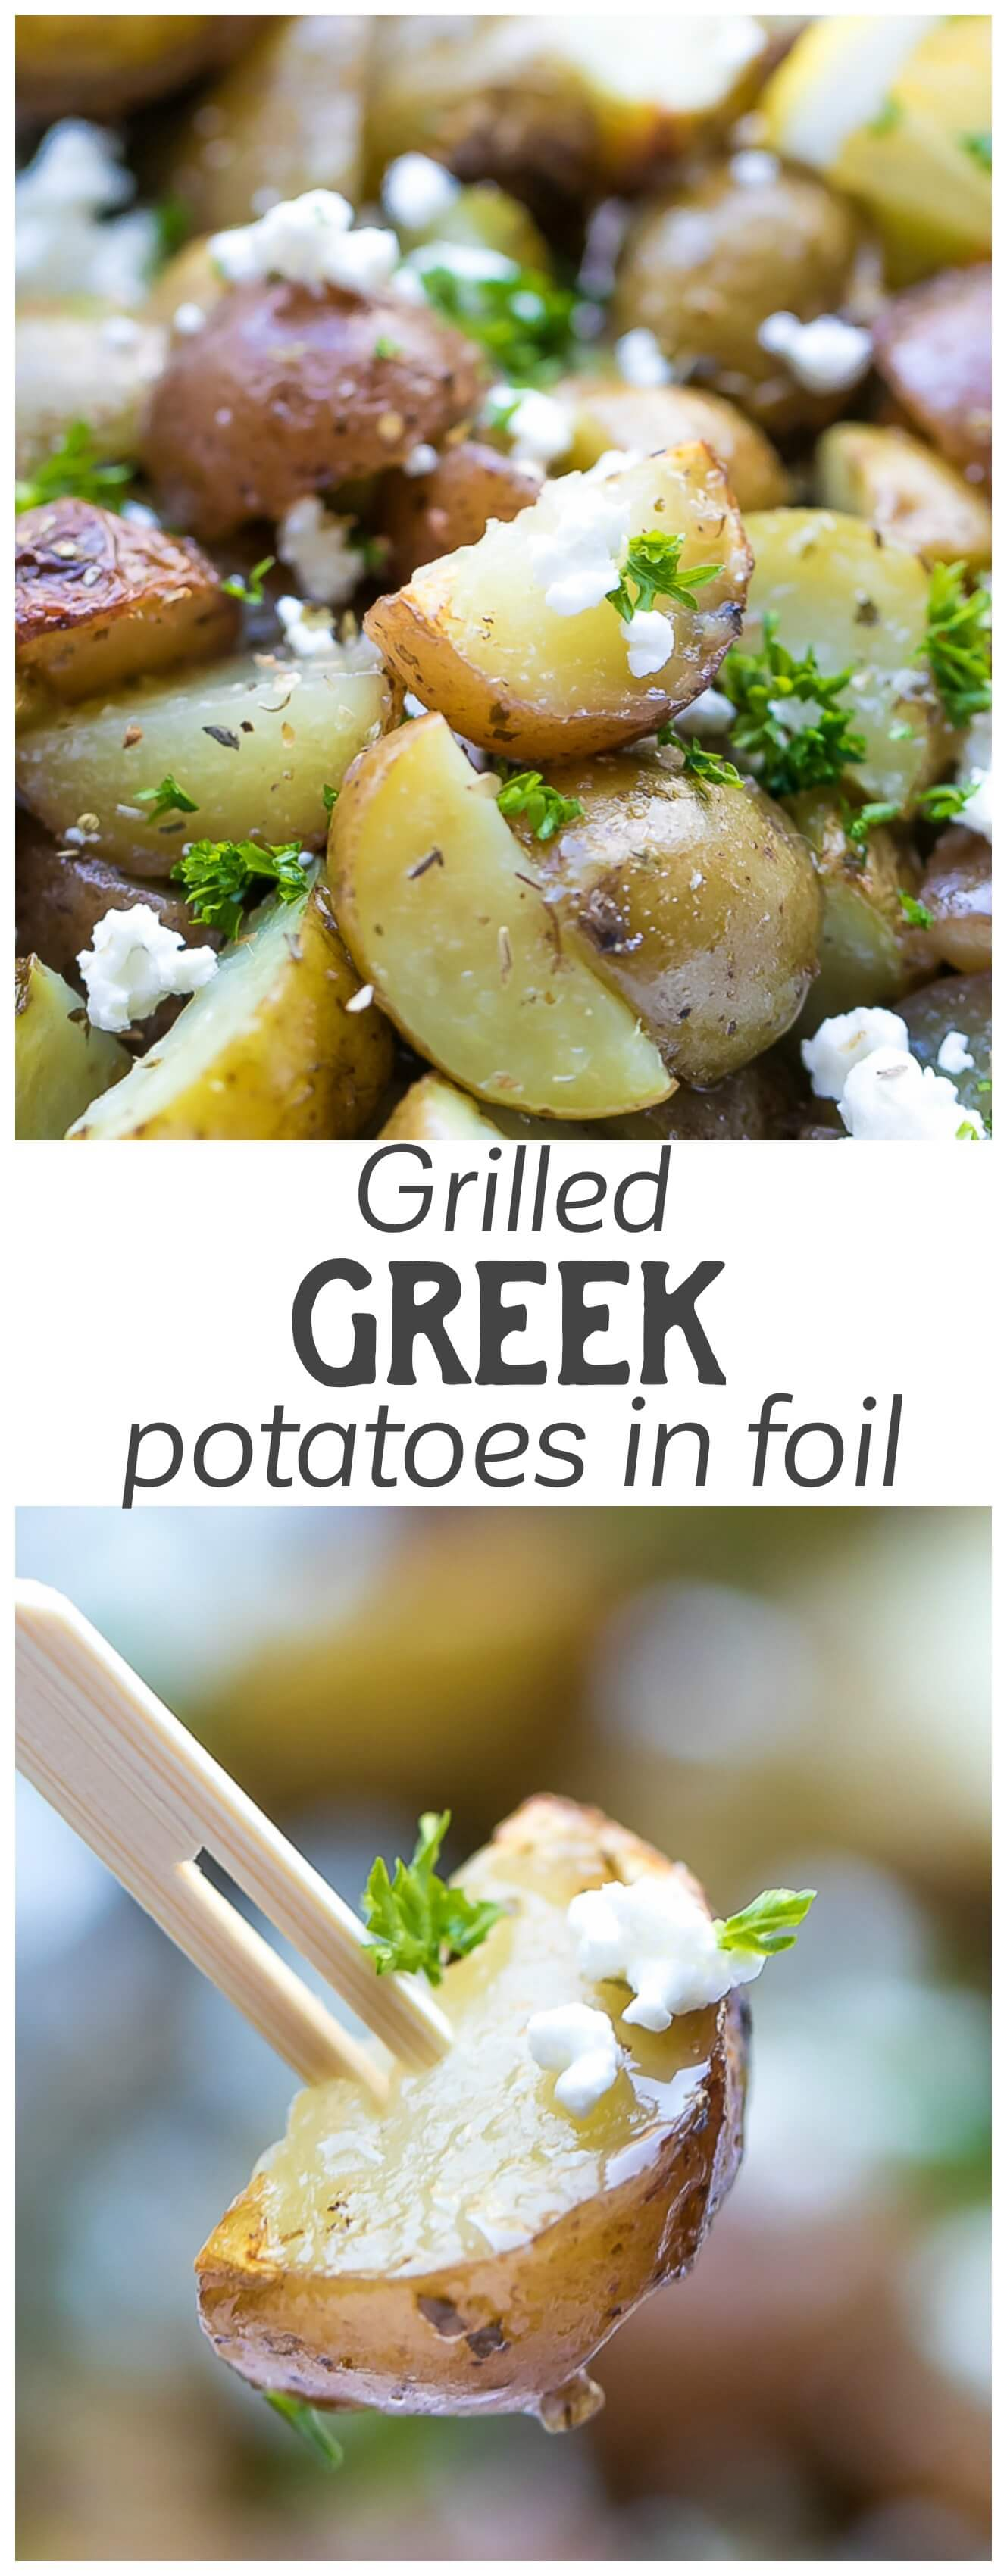 Grilled Greek Potatoes In Foil - quick and very easy to make, these potatoes are tender, flavorful and delicious. Mediterranean, Lemon, Feta Potatoes.